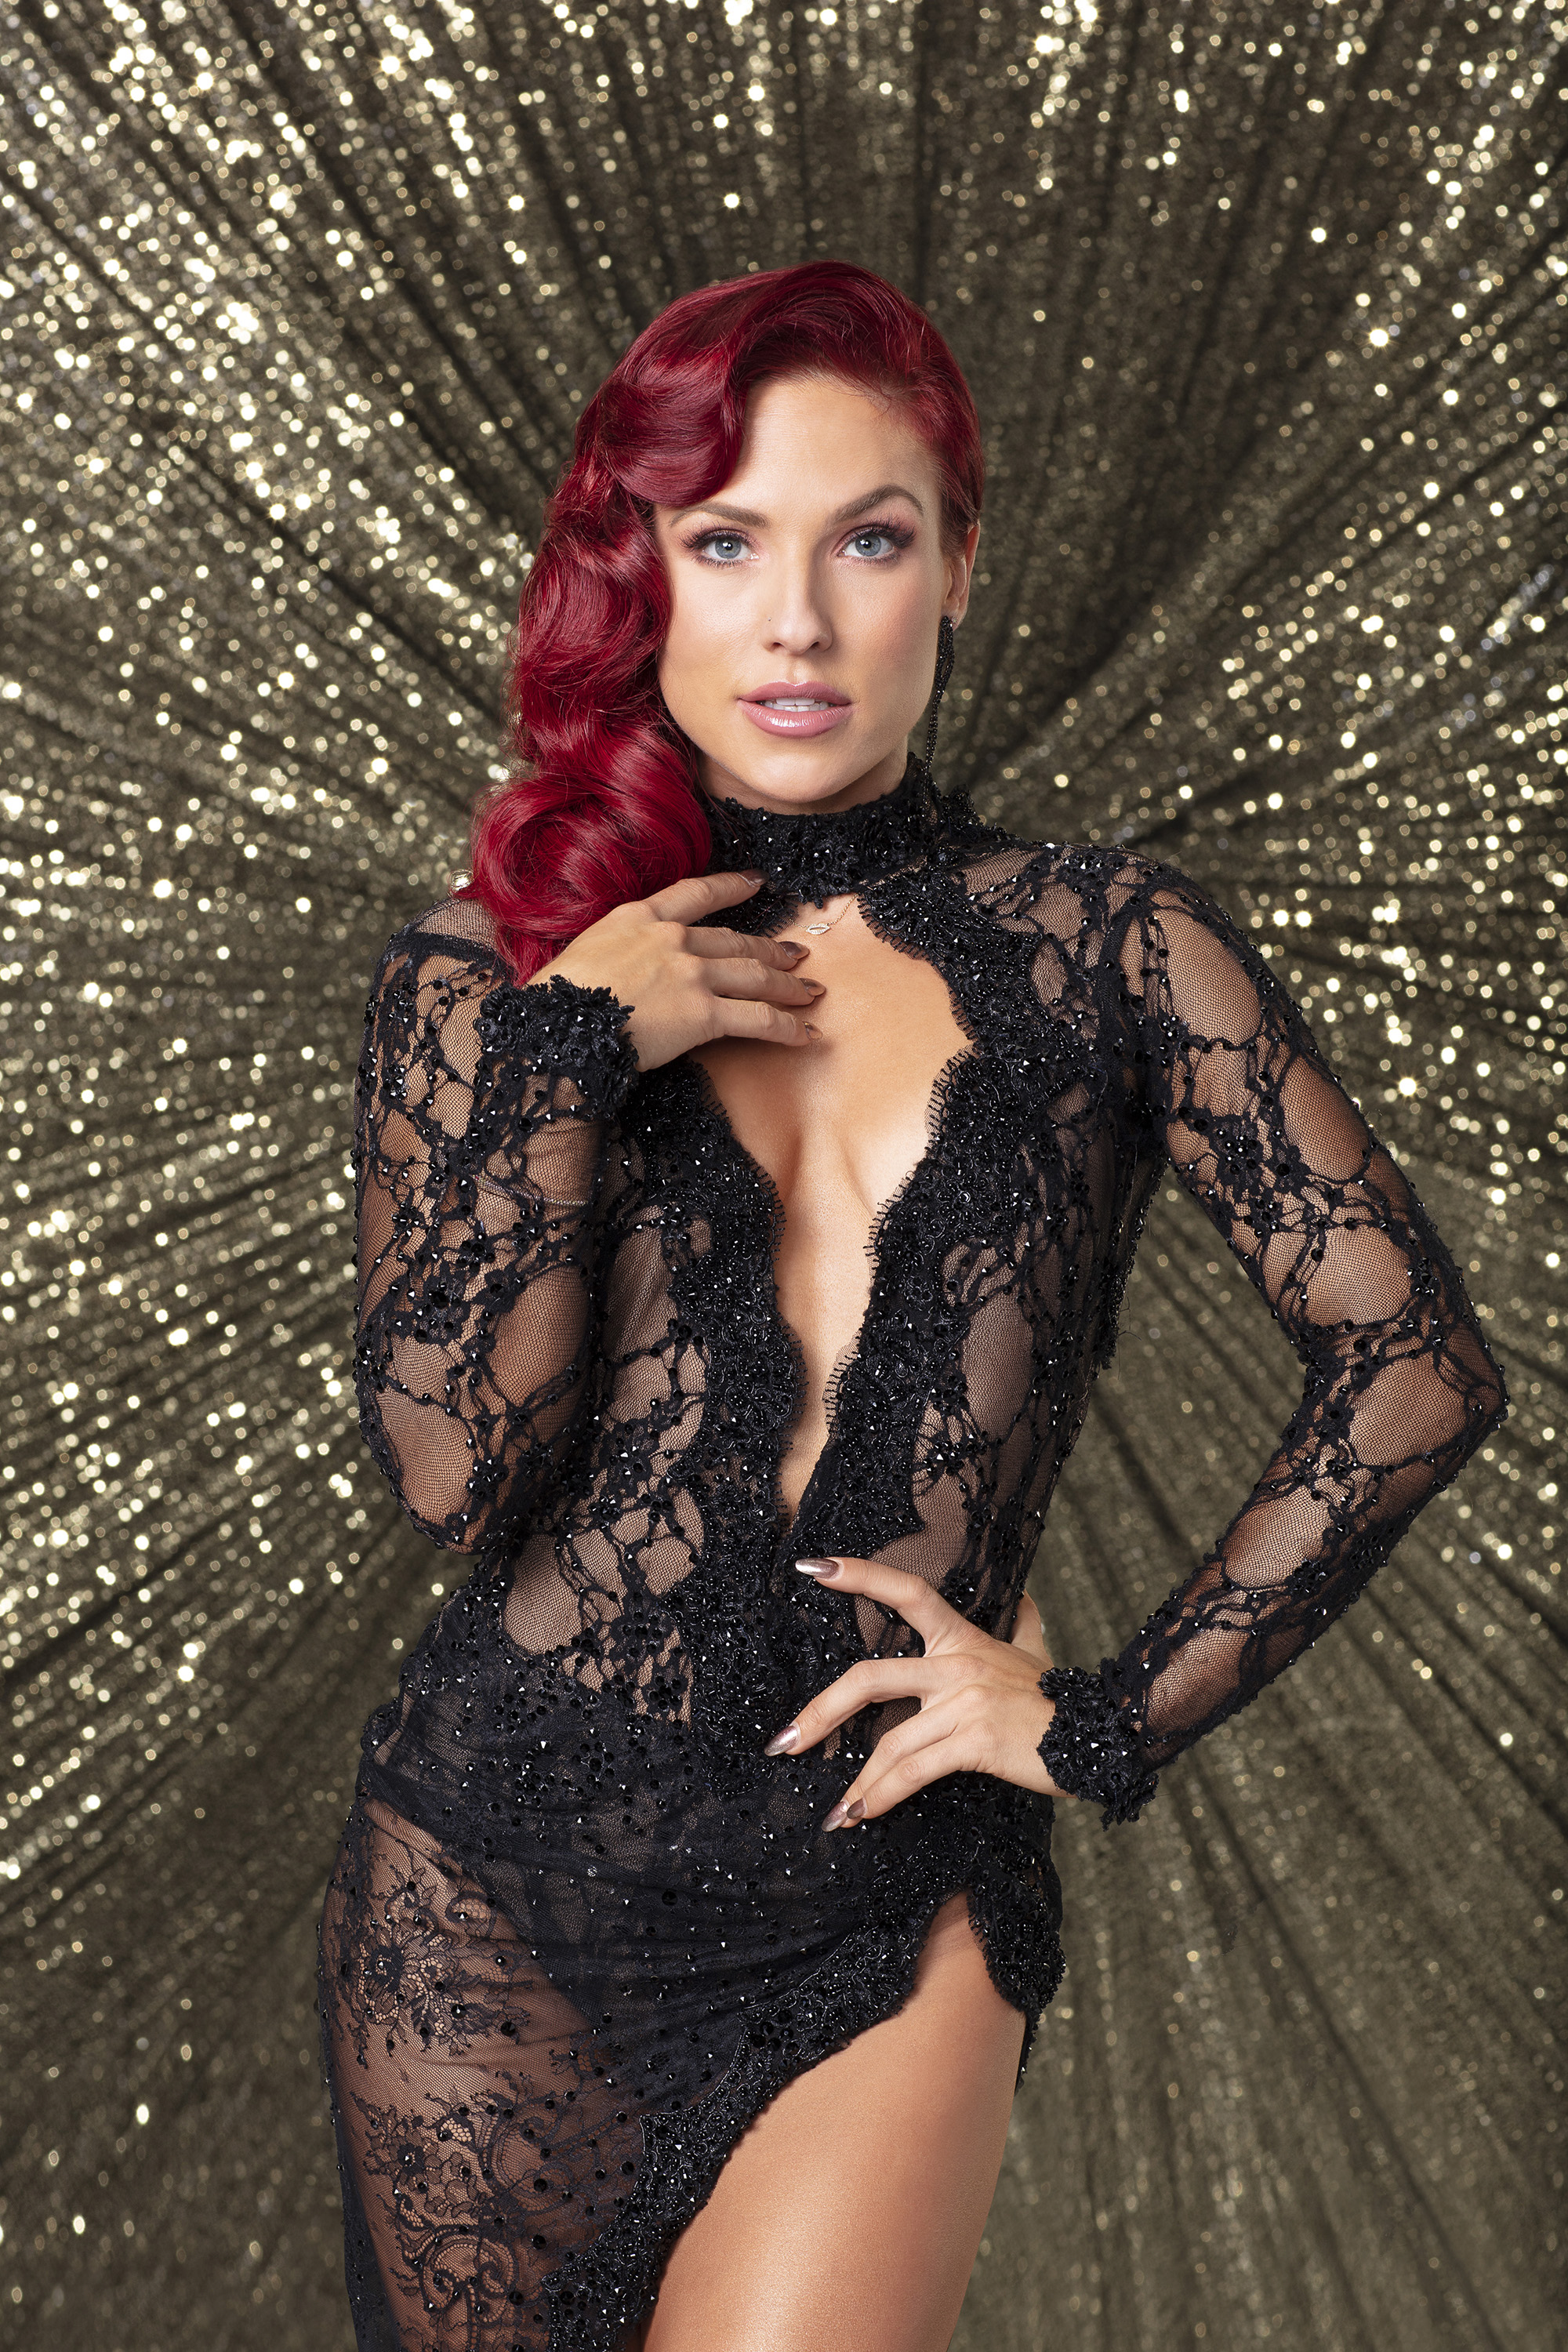 Pictures Sharna Burgess nude photos 2019